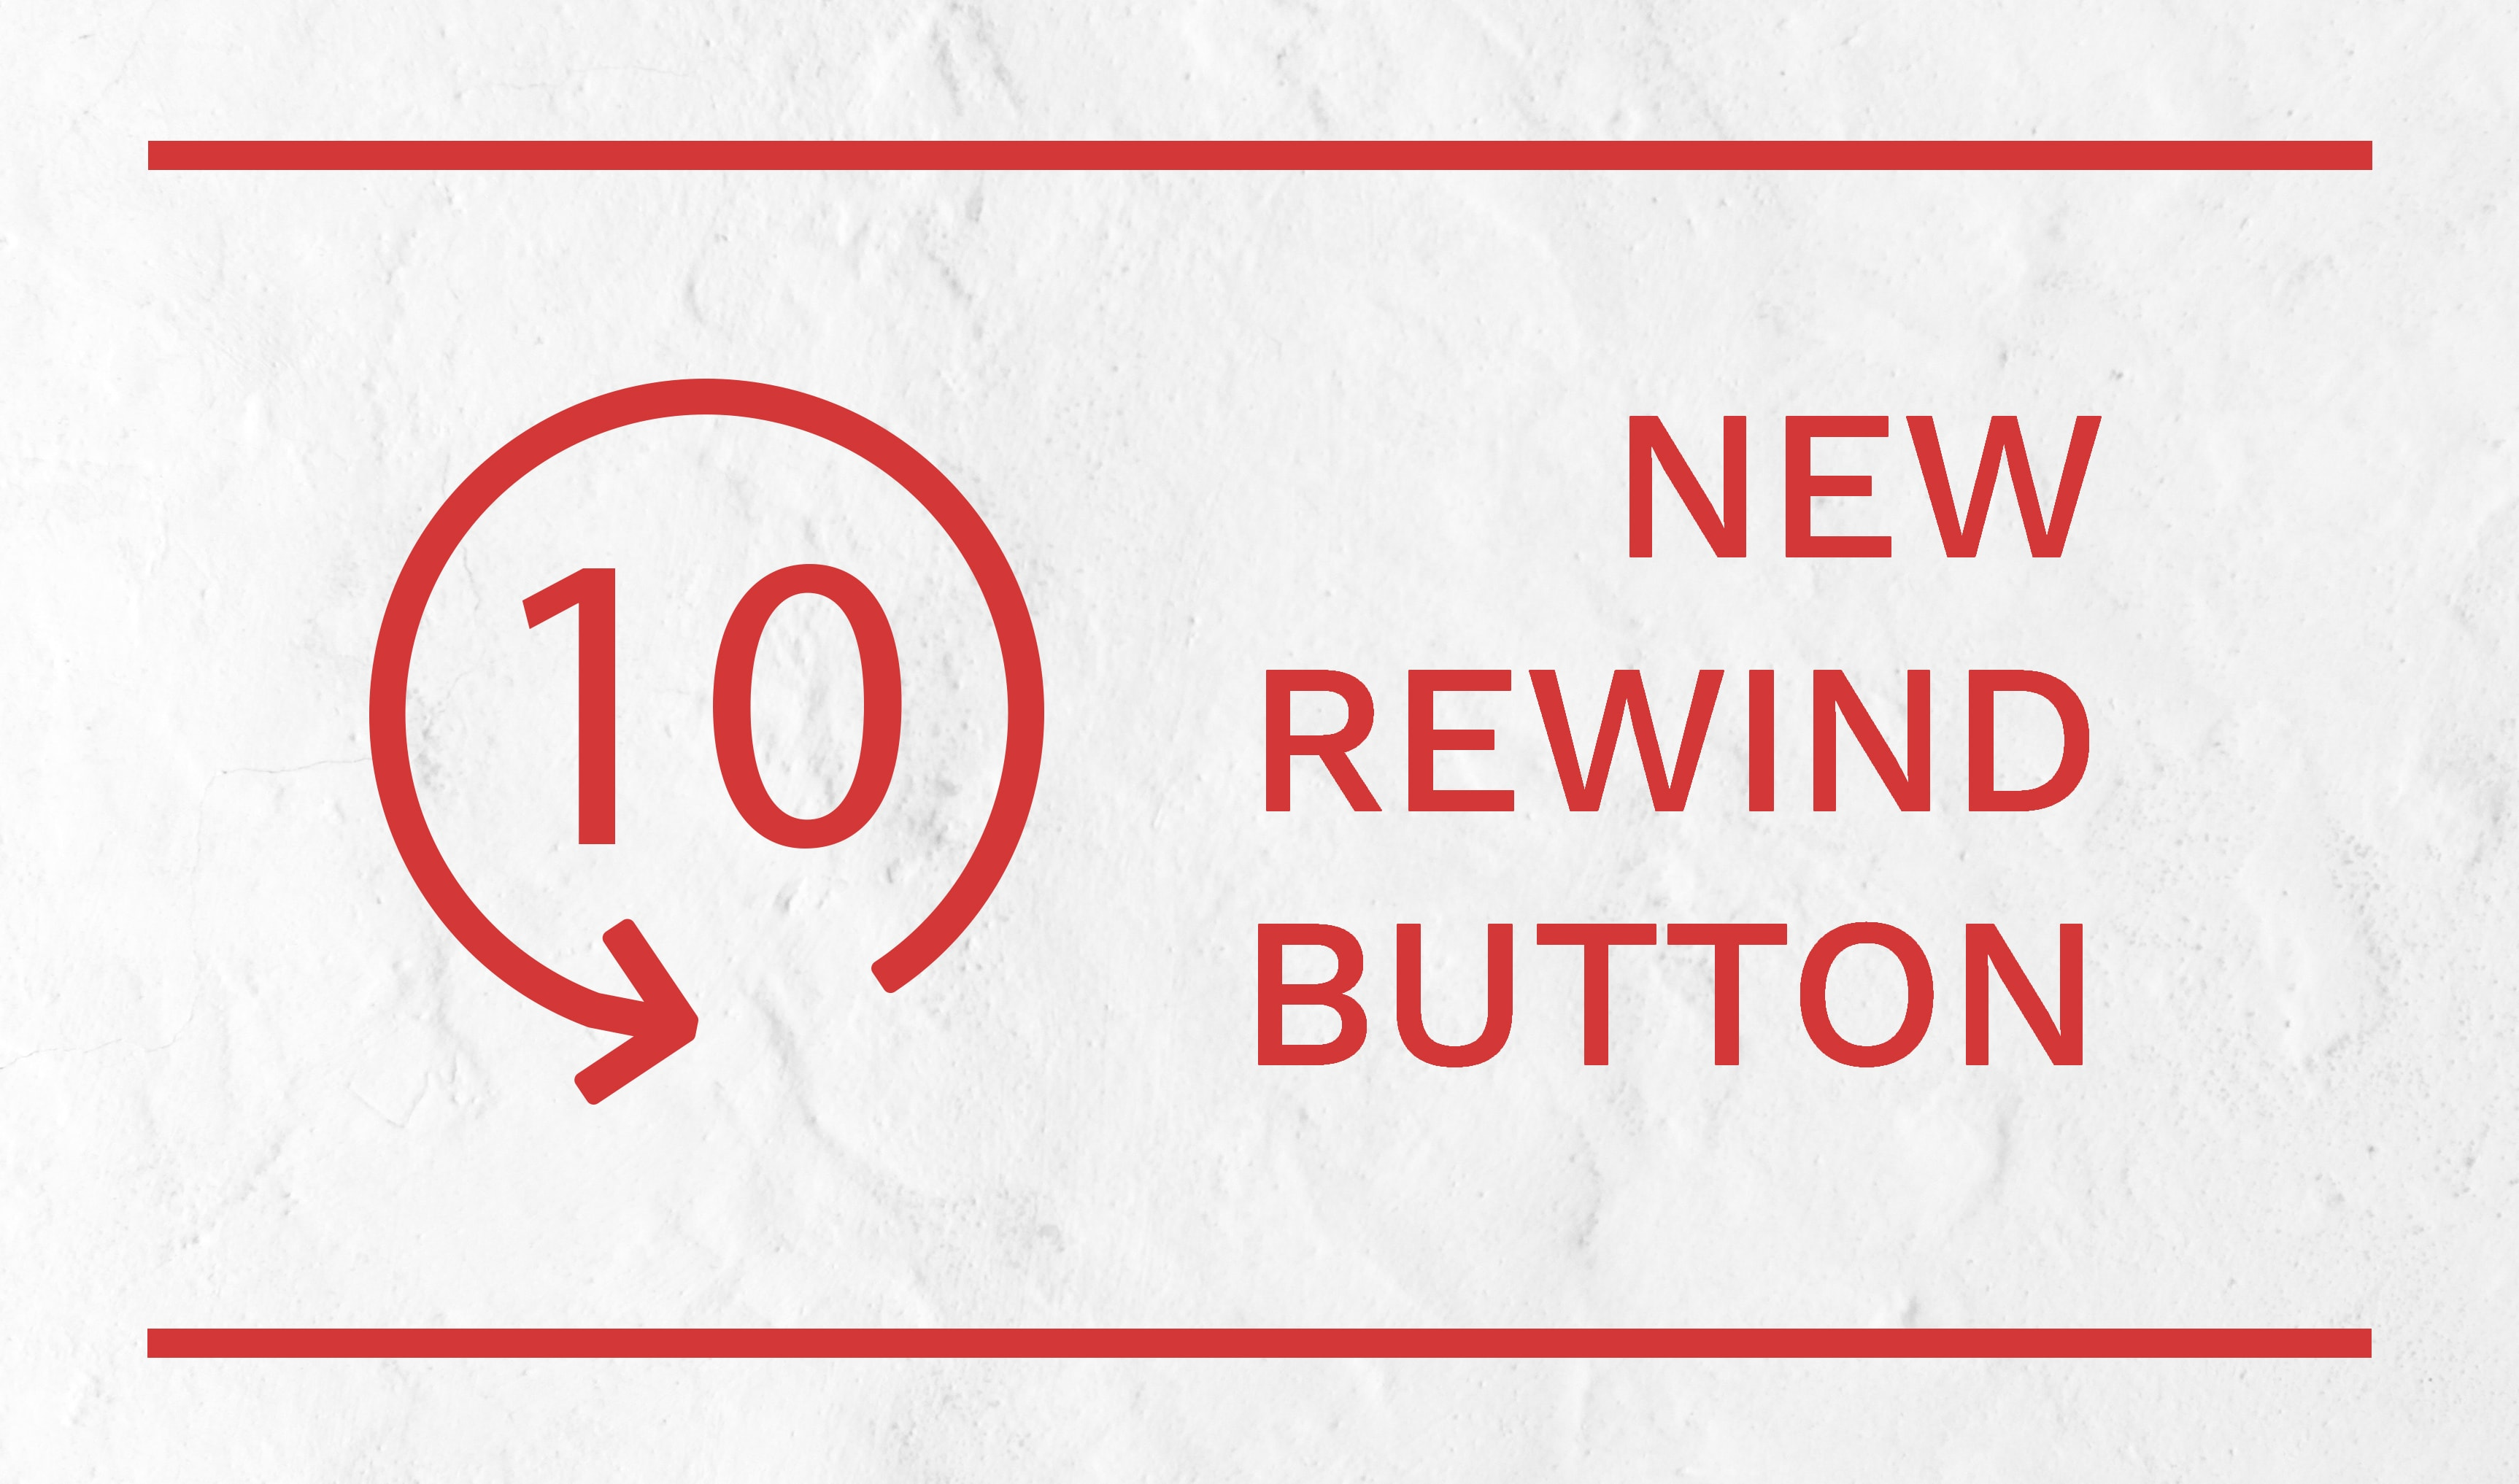 New rewind button